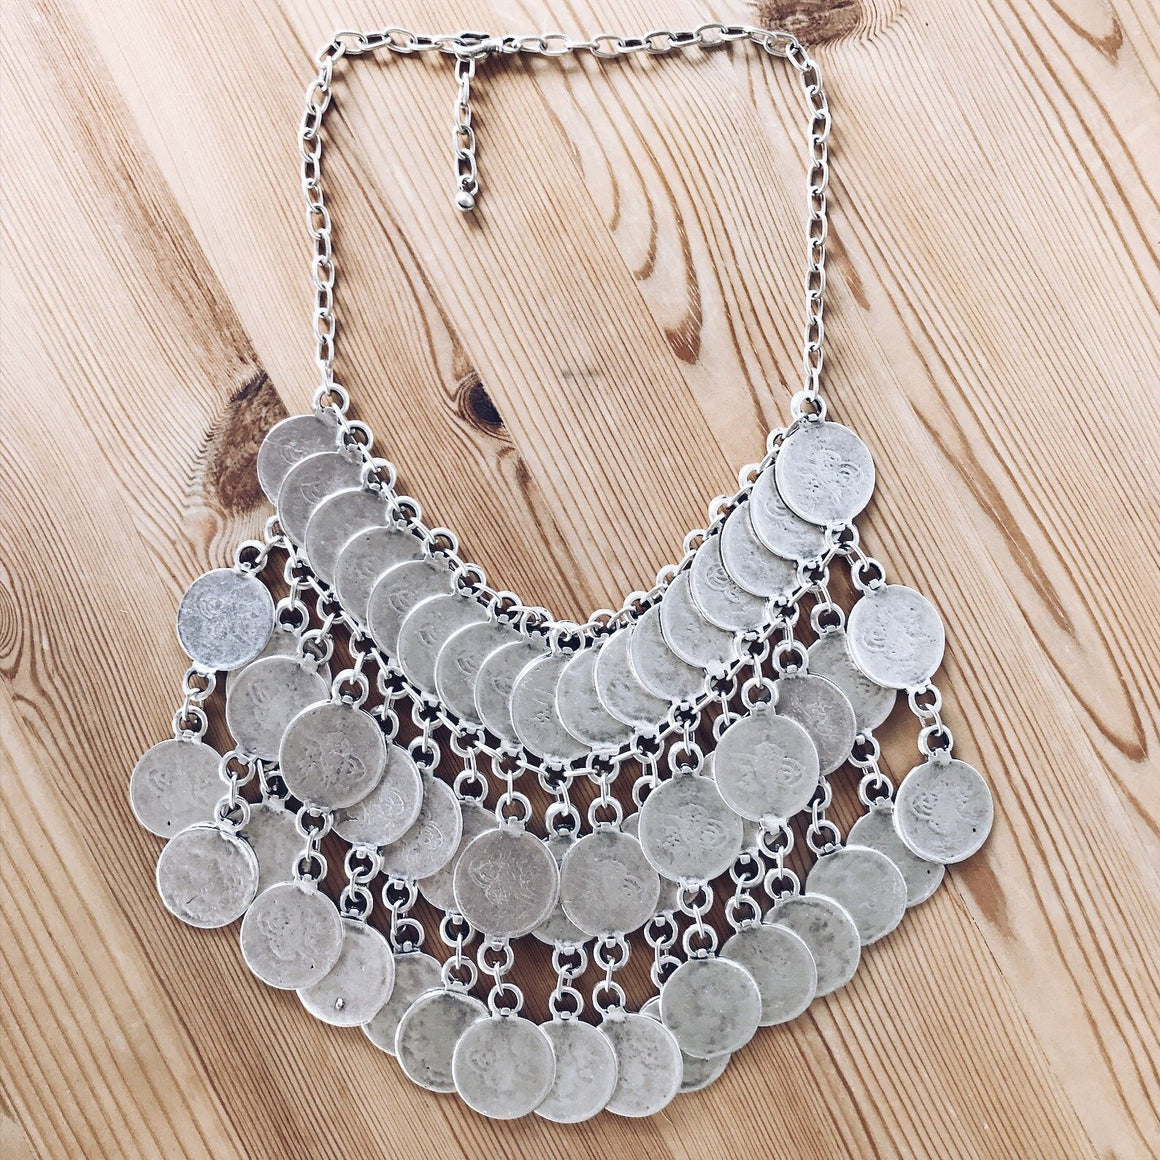 Marmara necklace